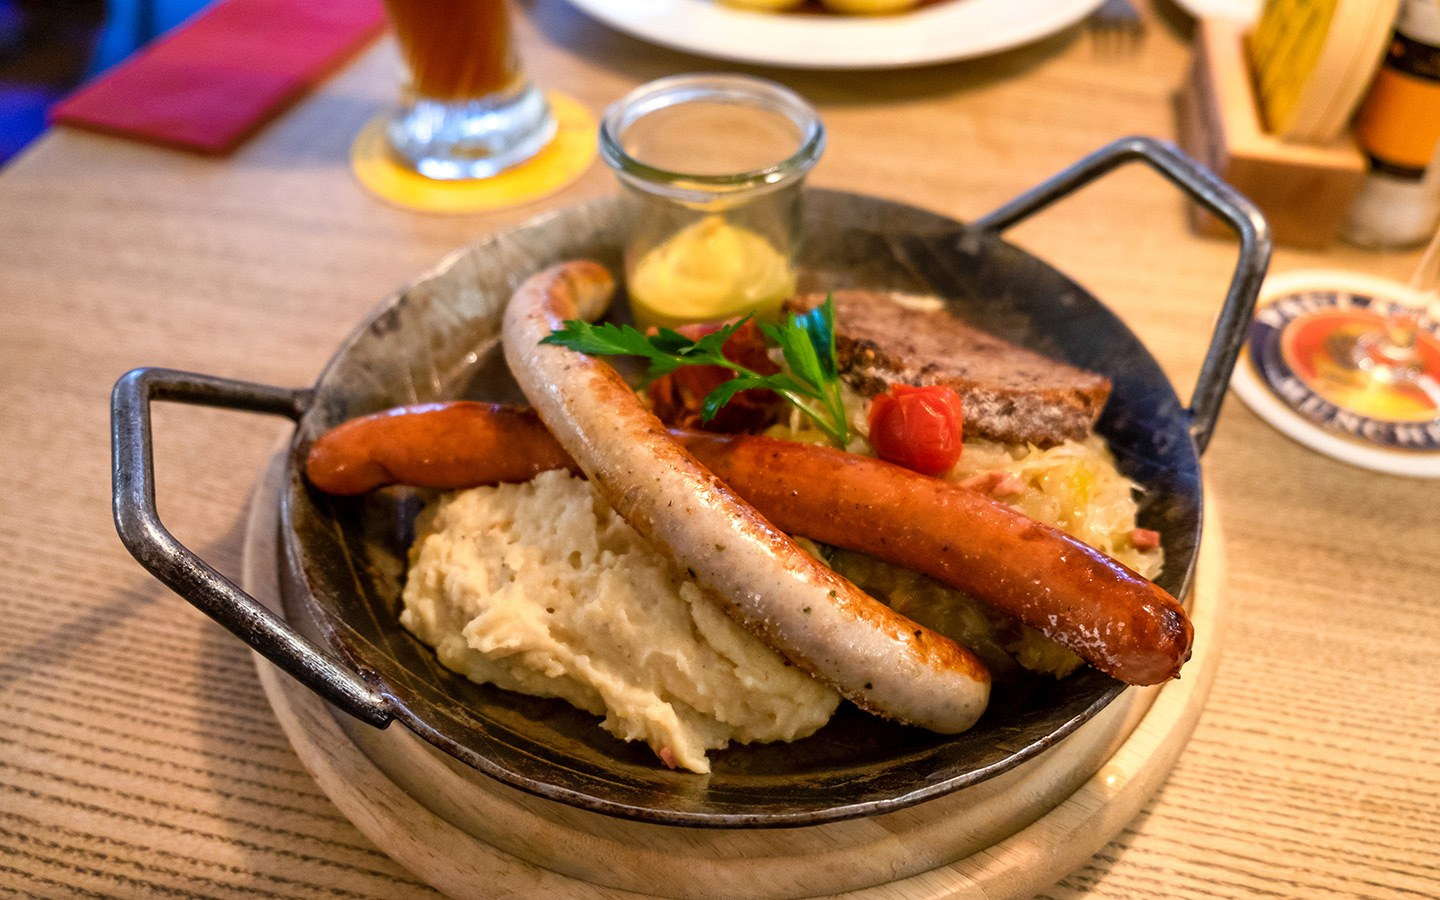 Bavarian food in Munich, Germany